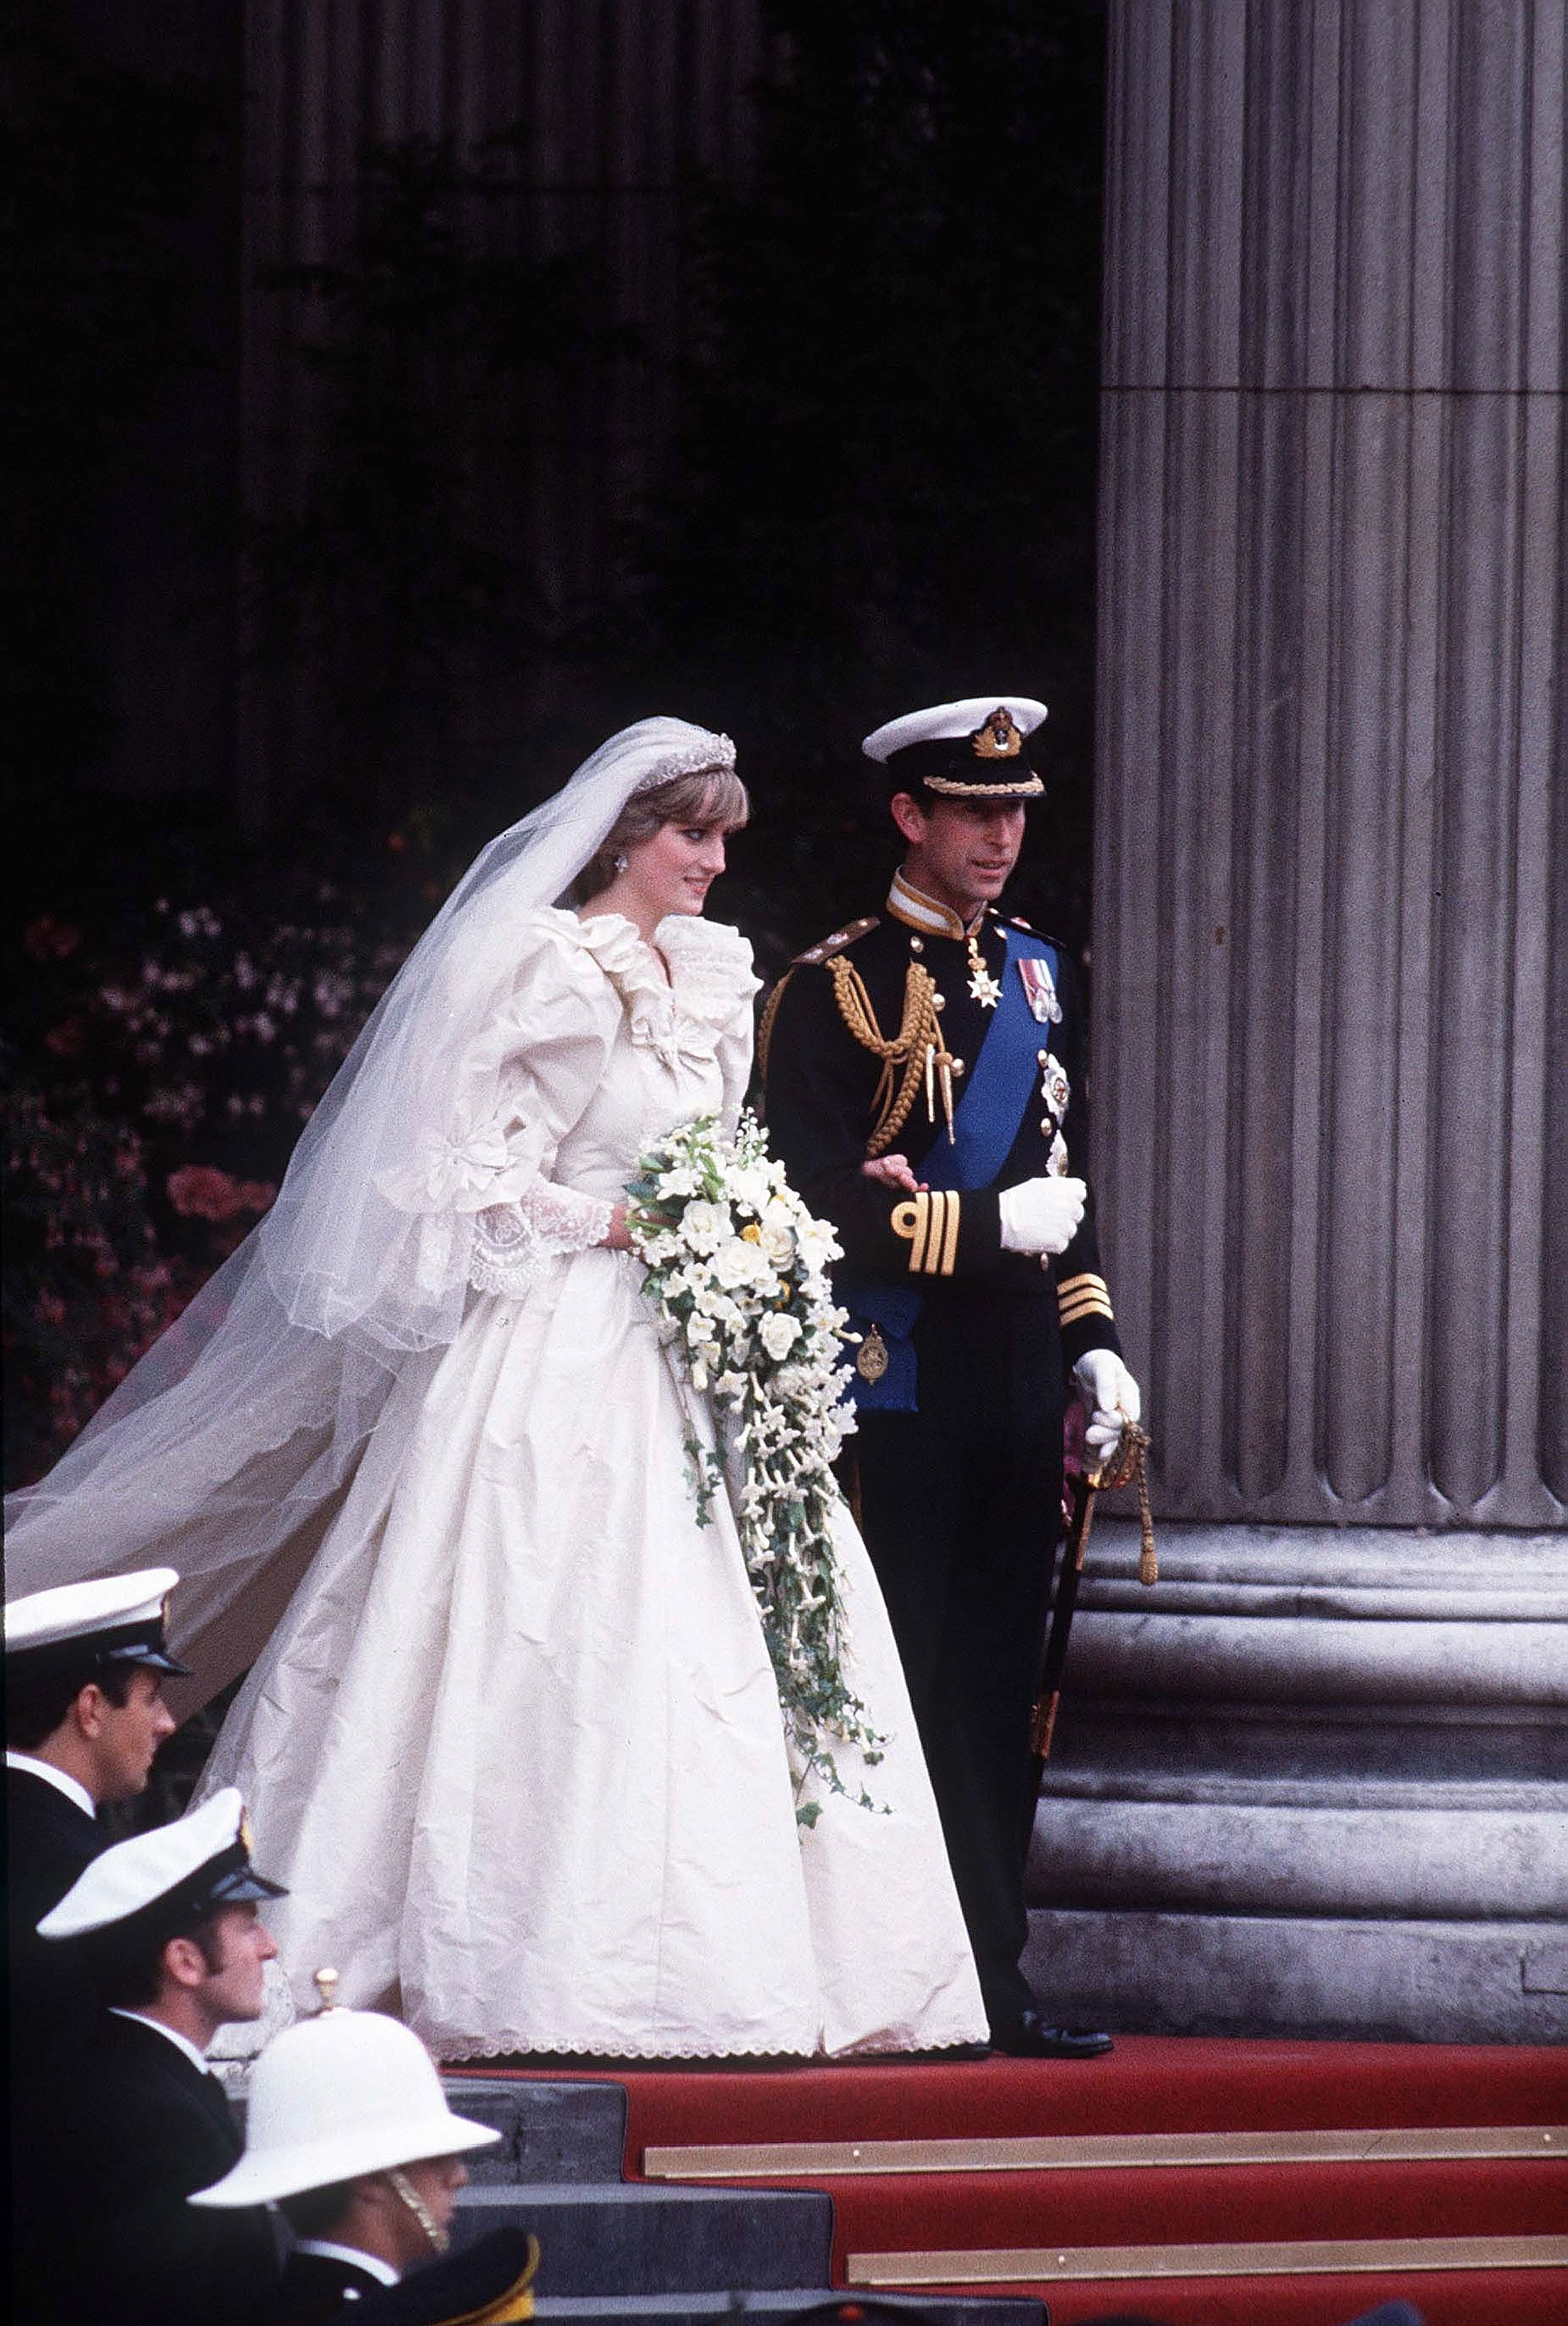 In July 1981, Princess Diana and Prince Charles wed at St. Paul's Cathedral in London.